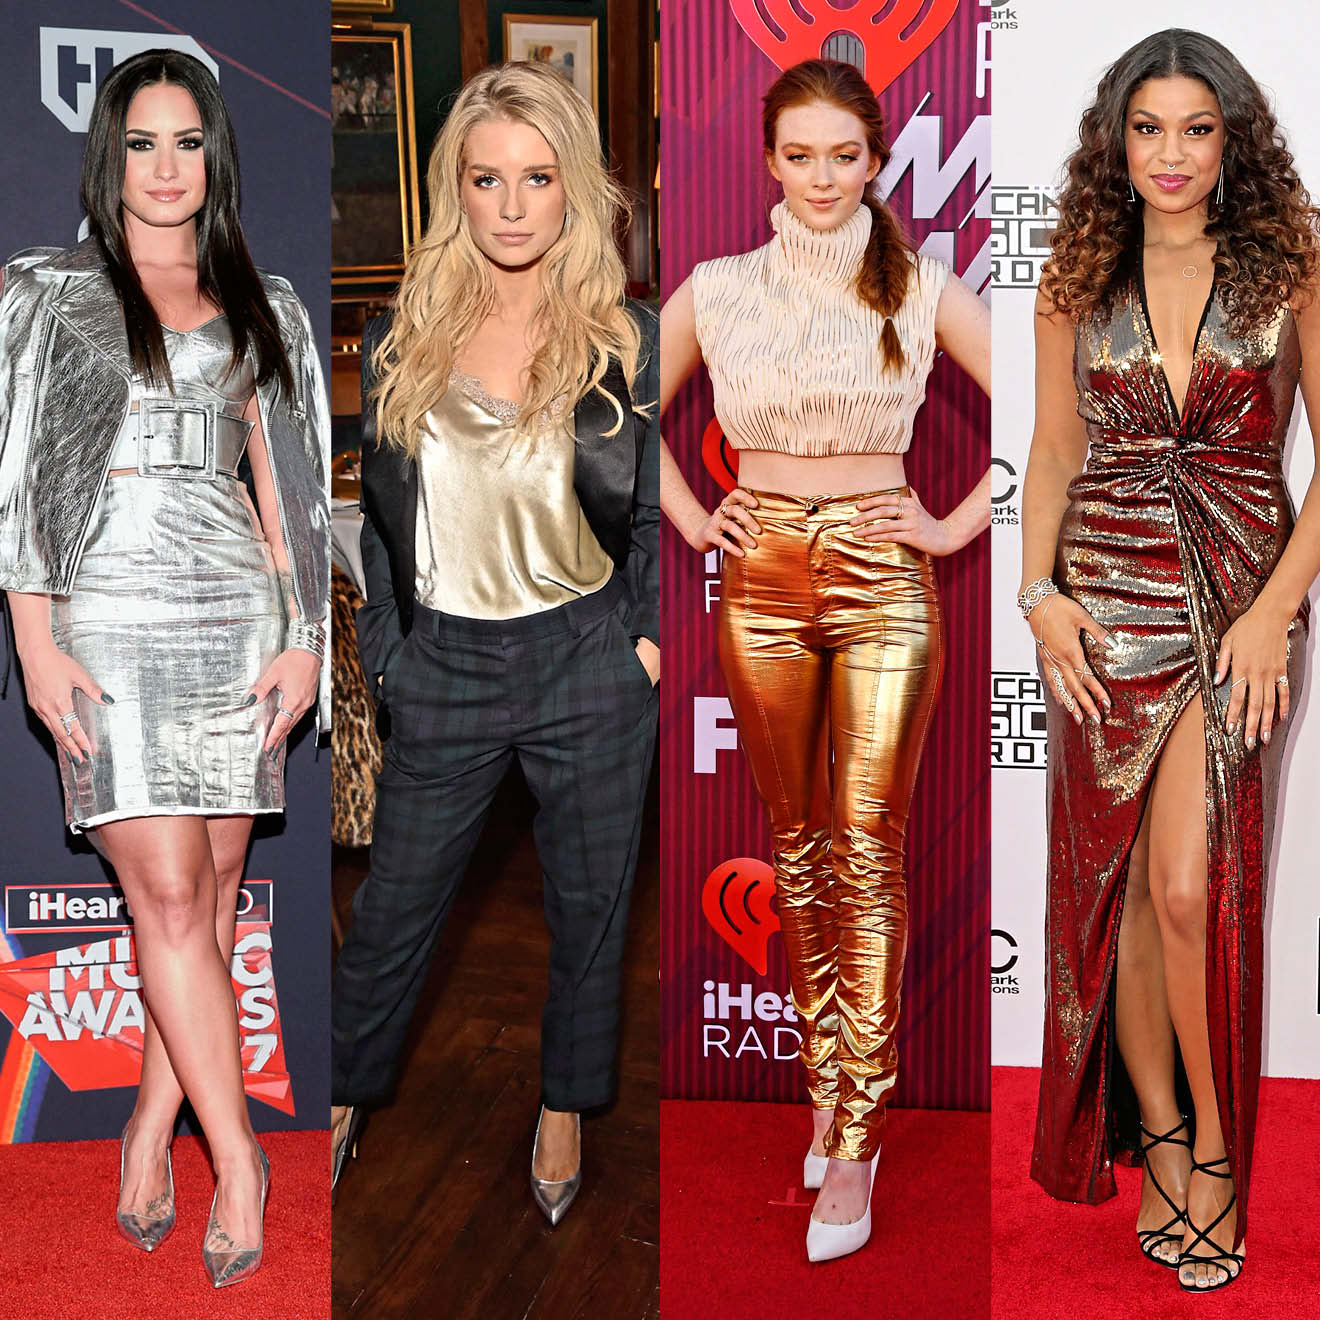 Glamouröse Silvester-Outfits im Metallic-Look.